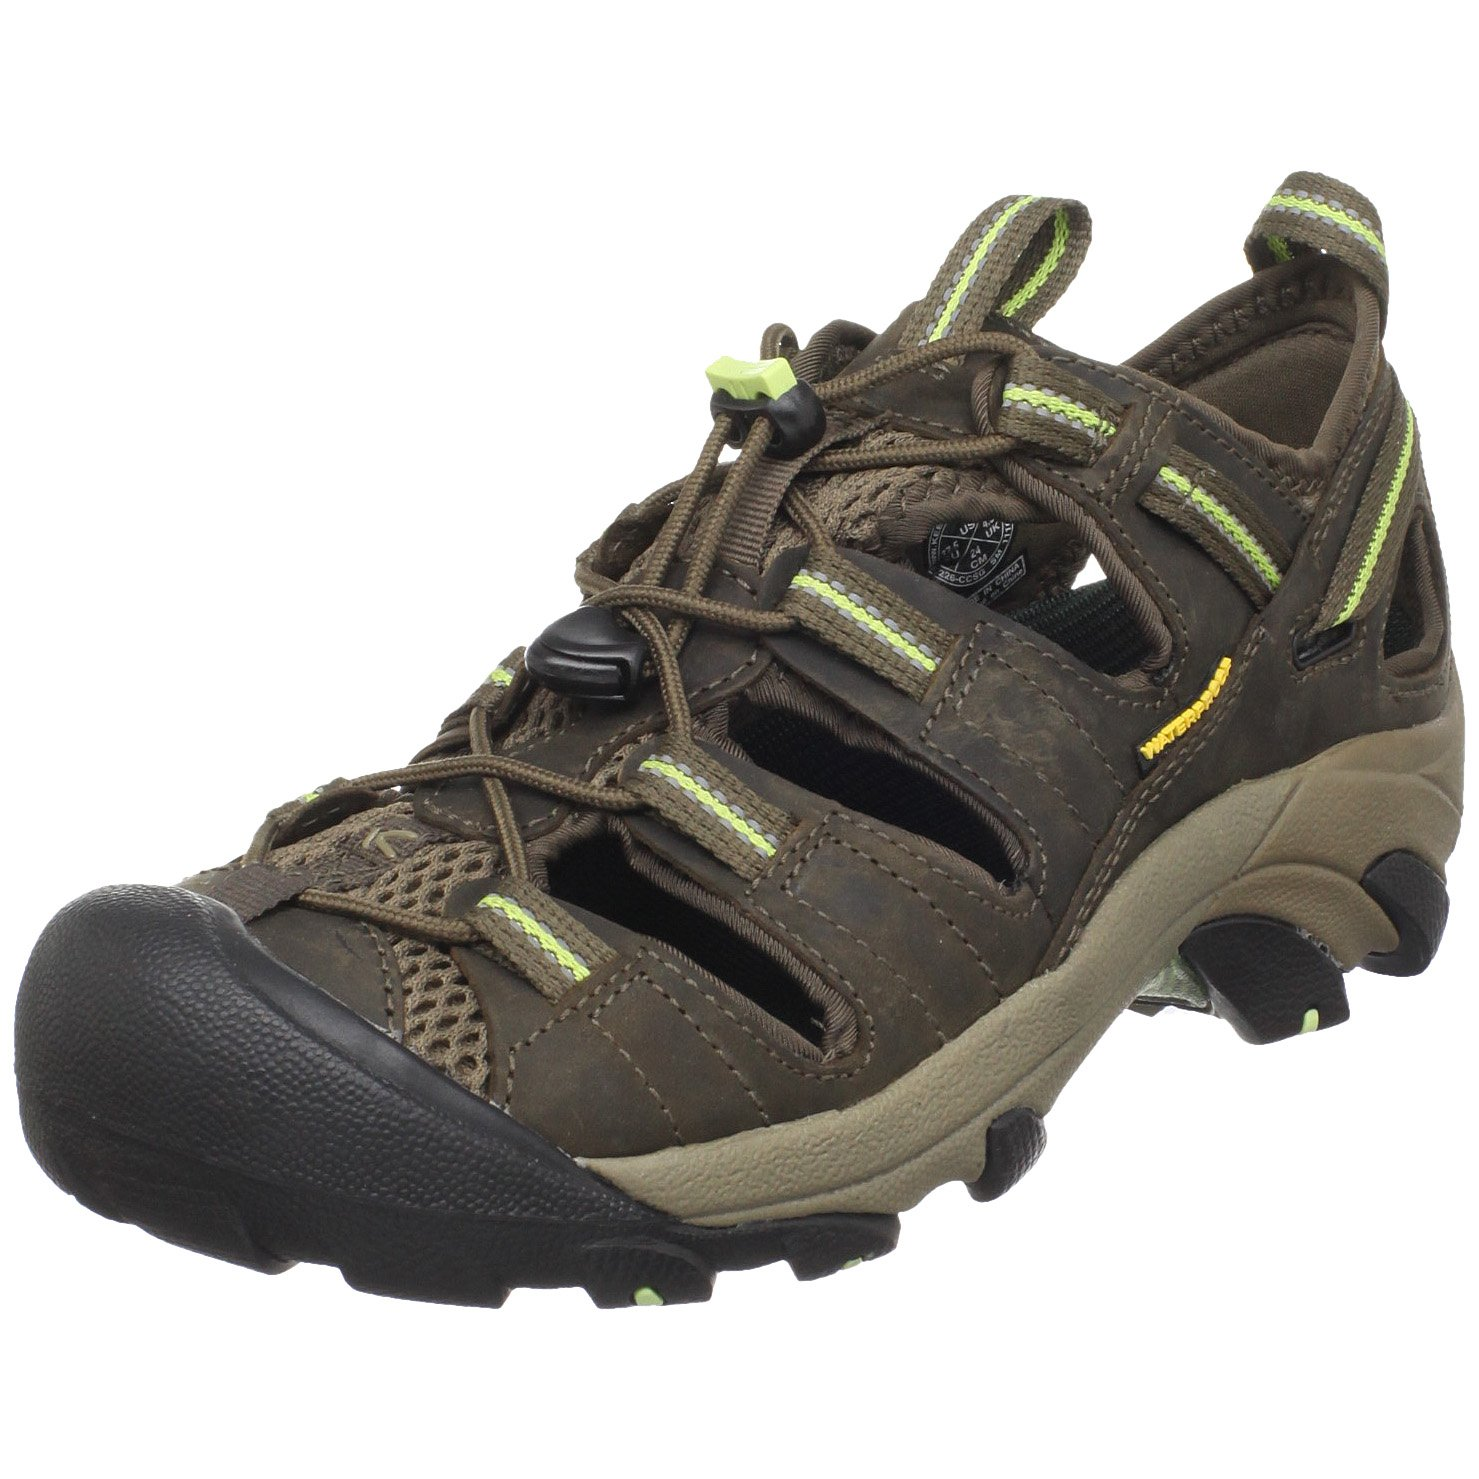 KEEN Women's Arroyo II Hiking Sandal,Chocolate Chip/Sap Green,8 M US by KEEN